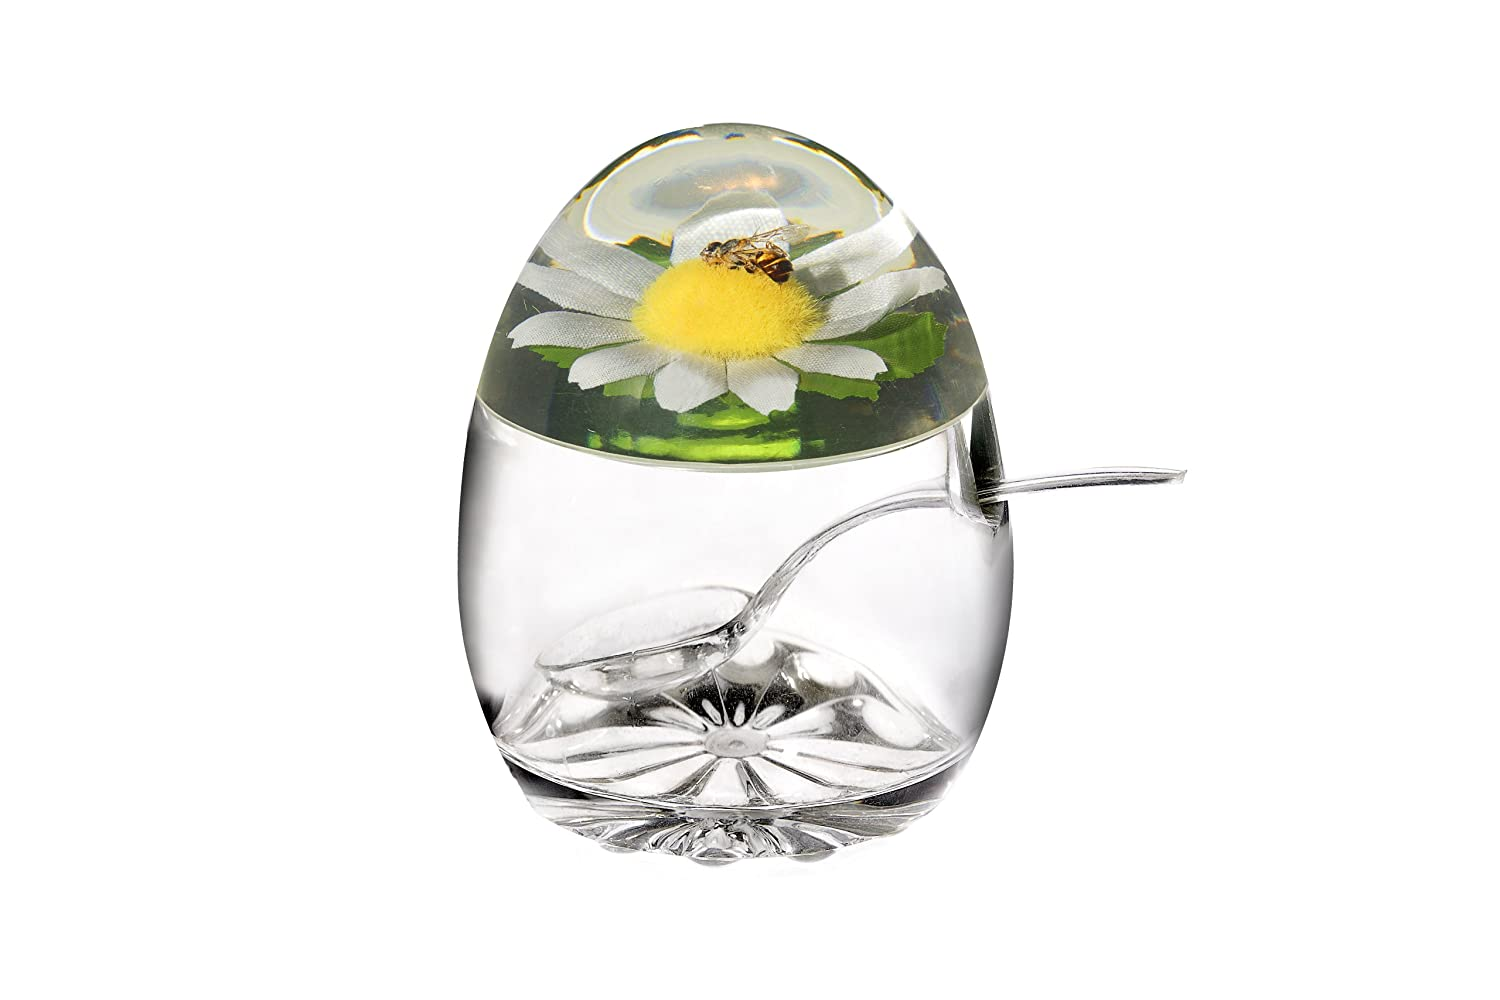 Epicurean Europe 11 x 8.5 cm Acrylic SAN Jampot and Spoon with Daisy and Honey Bee Design in Lid, Clear Epicurean Europe Limited 39BO9188E